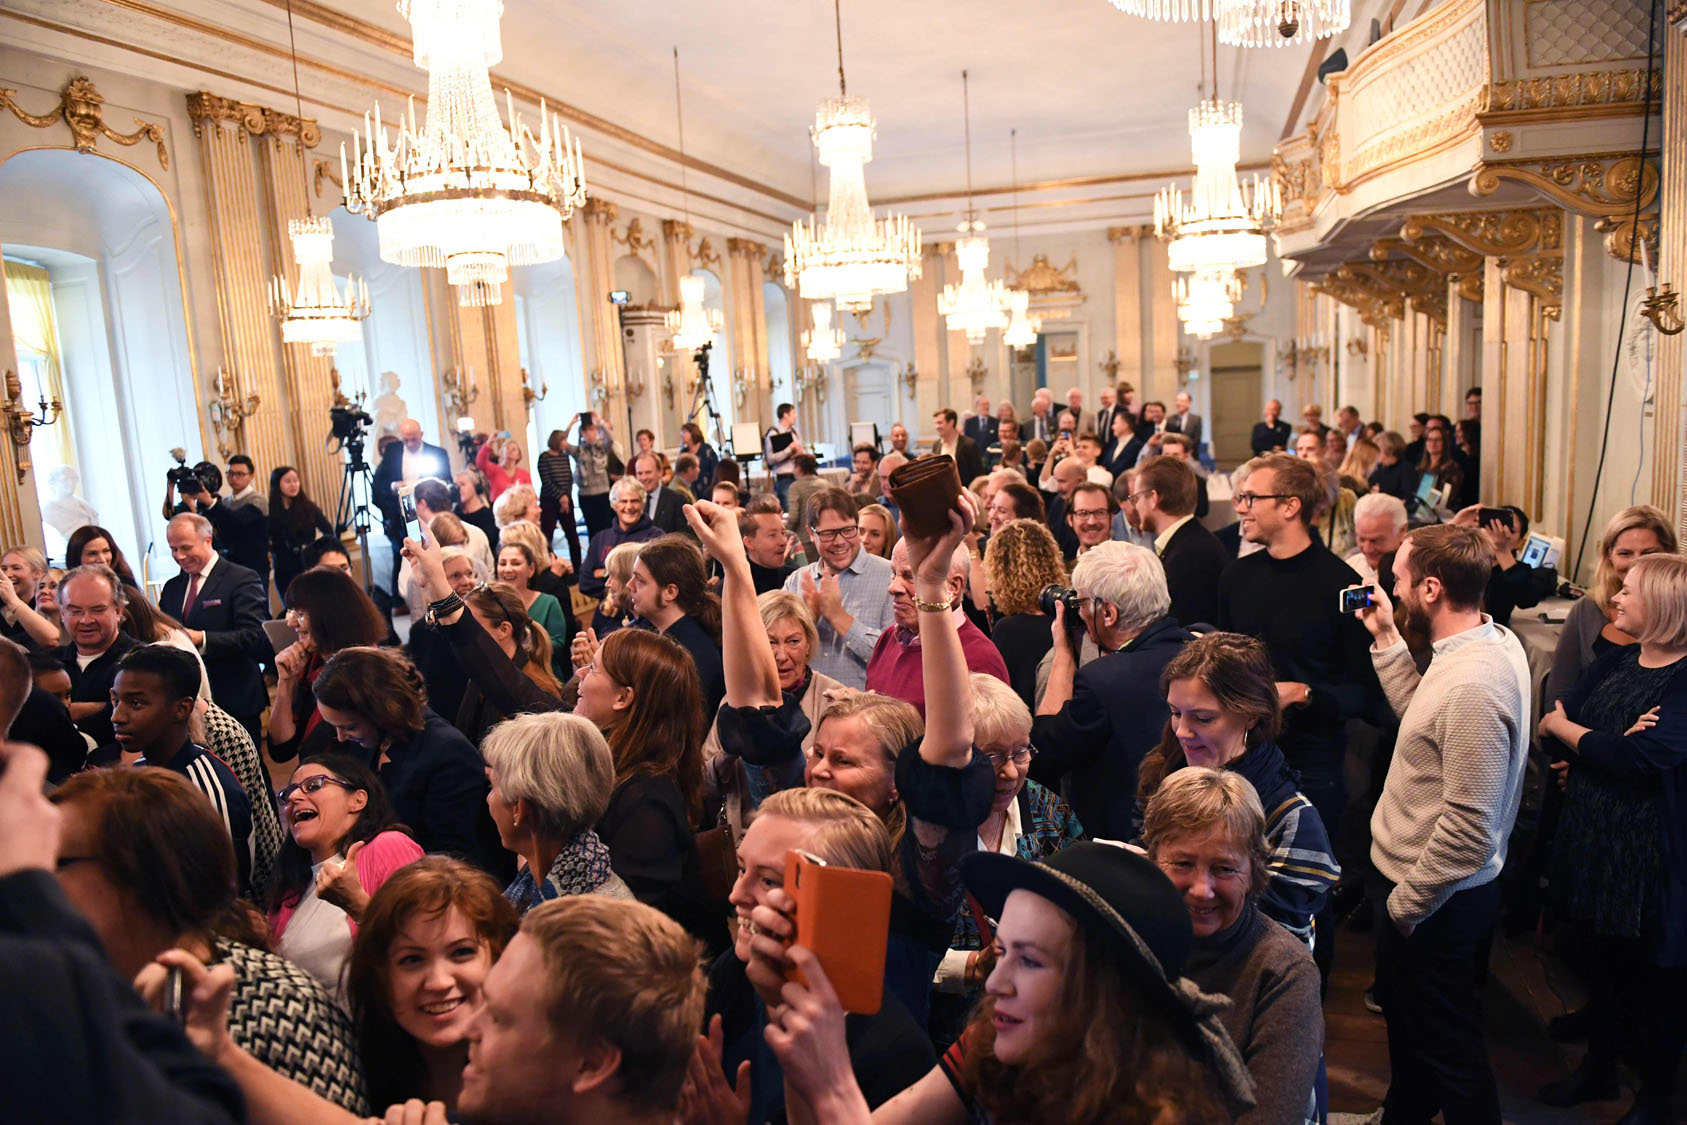 nobel prize in literature The swedish academy, the organization that doles out the nobel prize in literature, appears to be coming apart at the seams following allegations of sexual and financial misconduct the economic crime unit of the swedish police today said it has launched an investigation into the body, for.